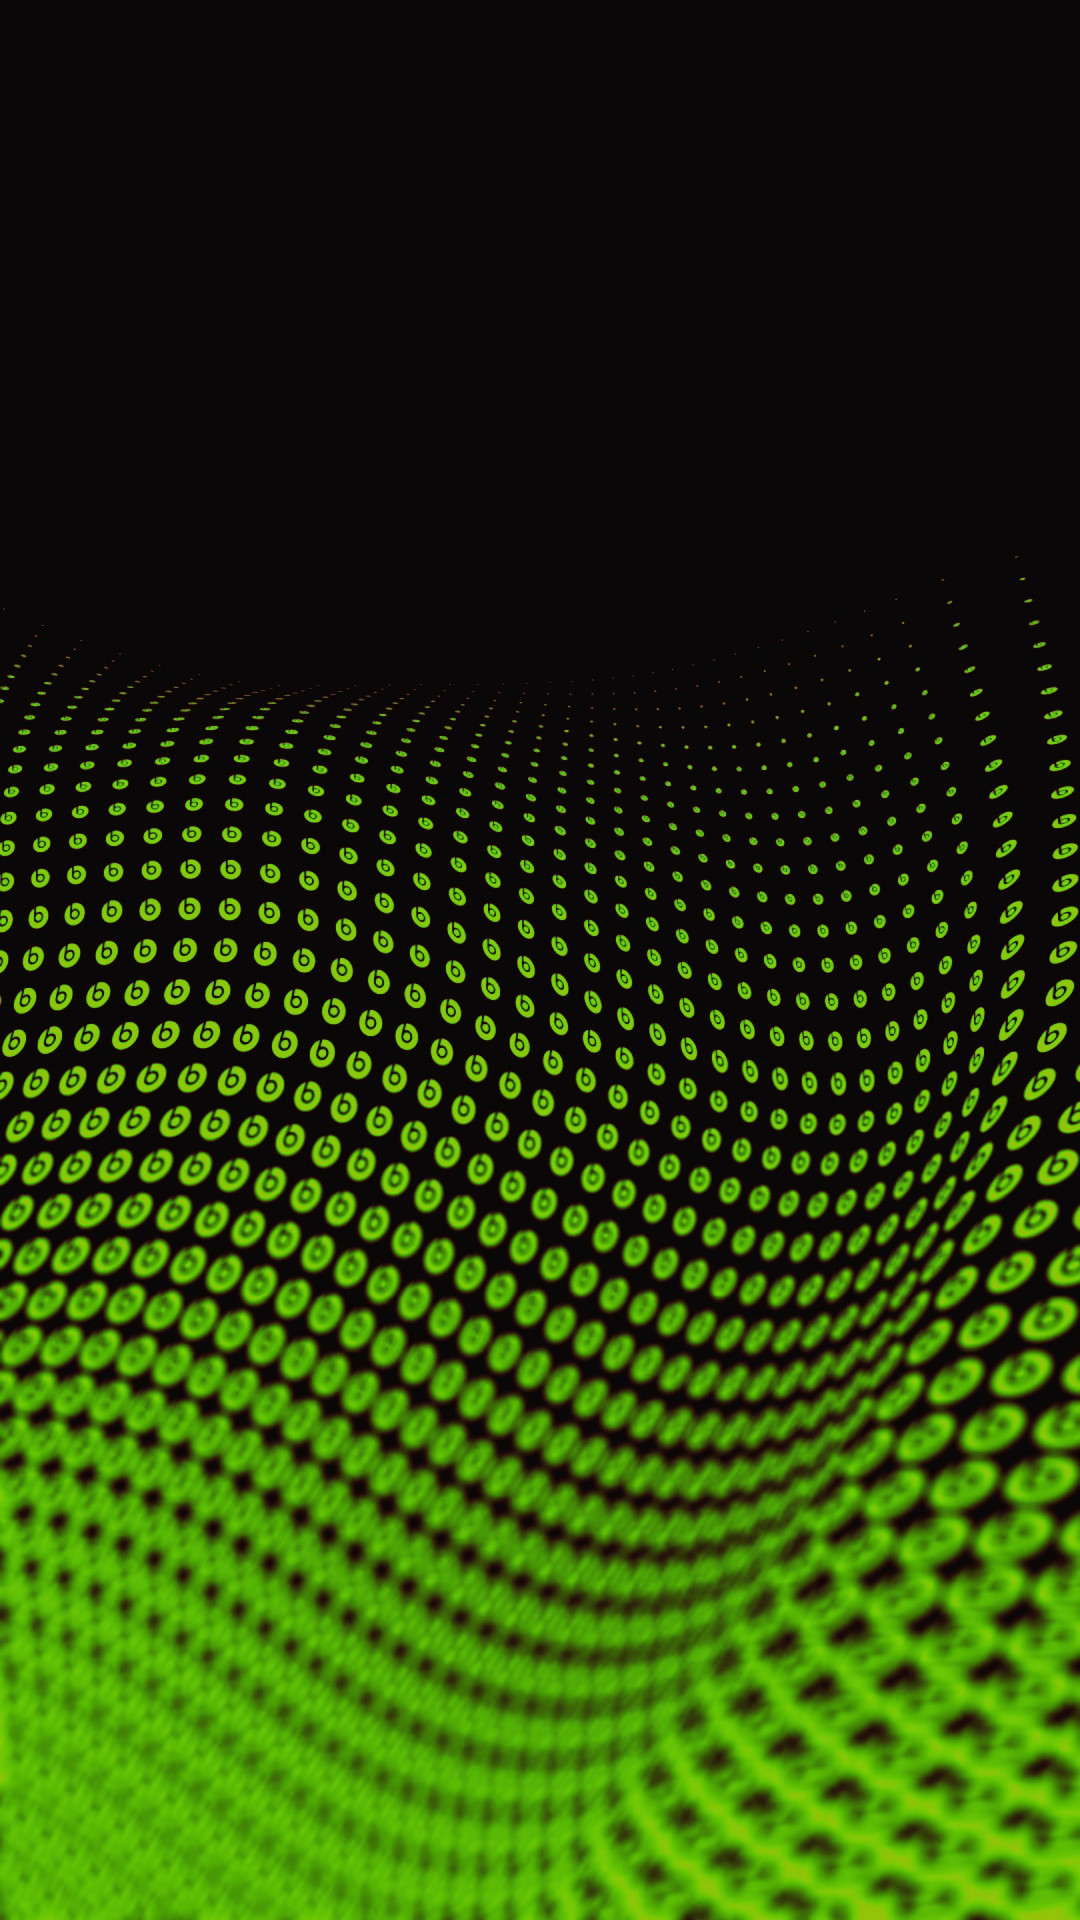 Samsung Galaxy Note 3 Wallpapers: Green abstract android wallpaper .